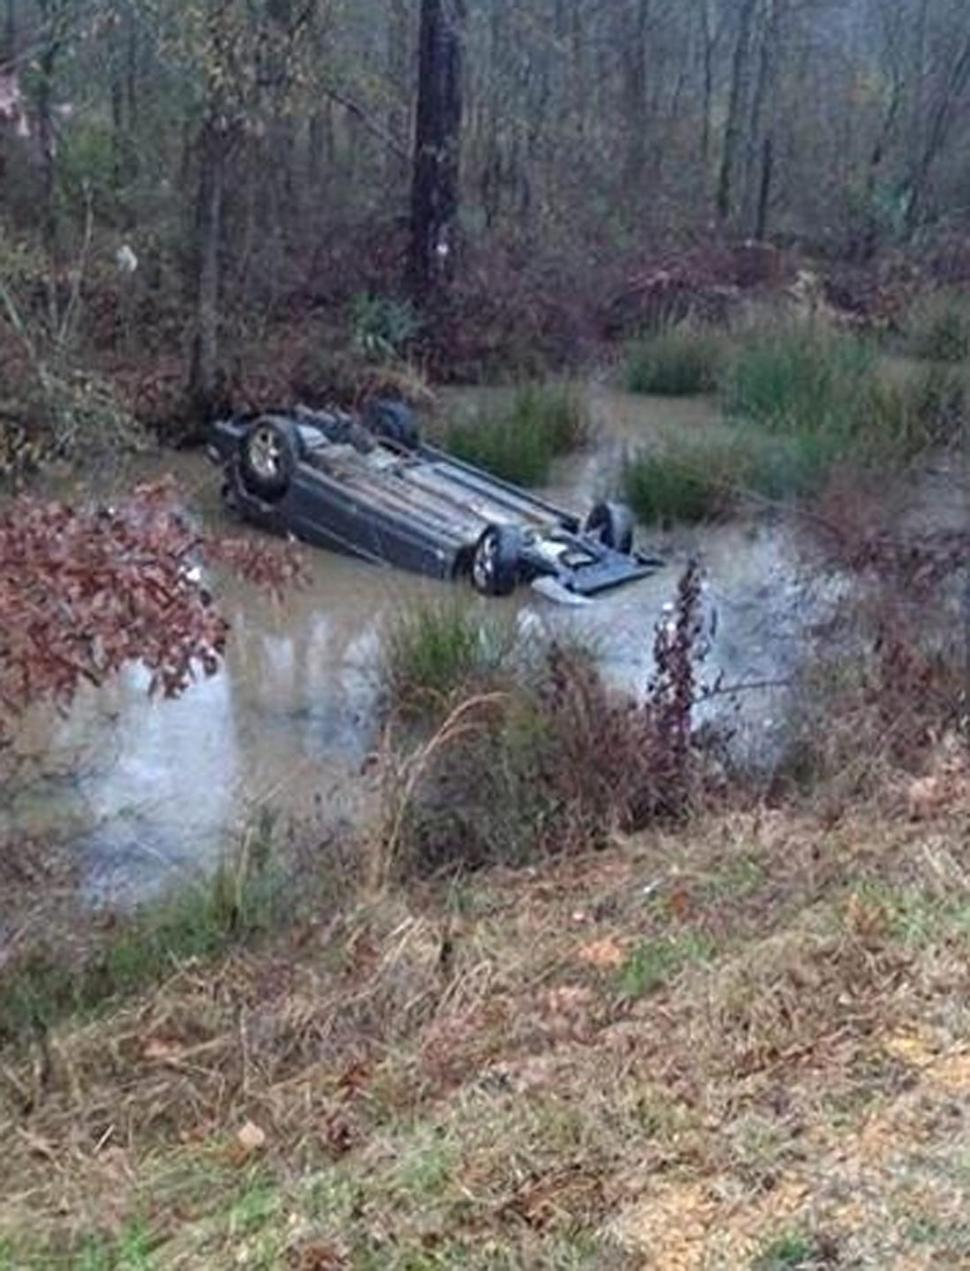 Mississippi rankin county star - Helena Was Underwater For Photo Courtesy Of Rankin County Sheriff Department